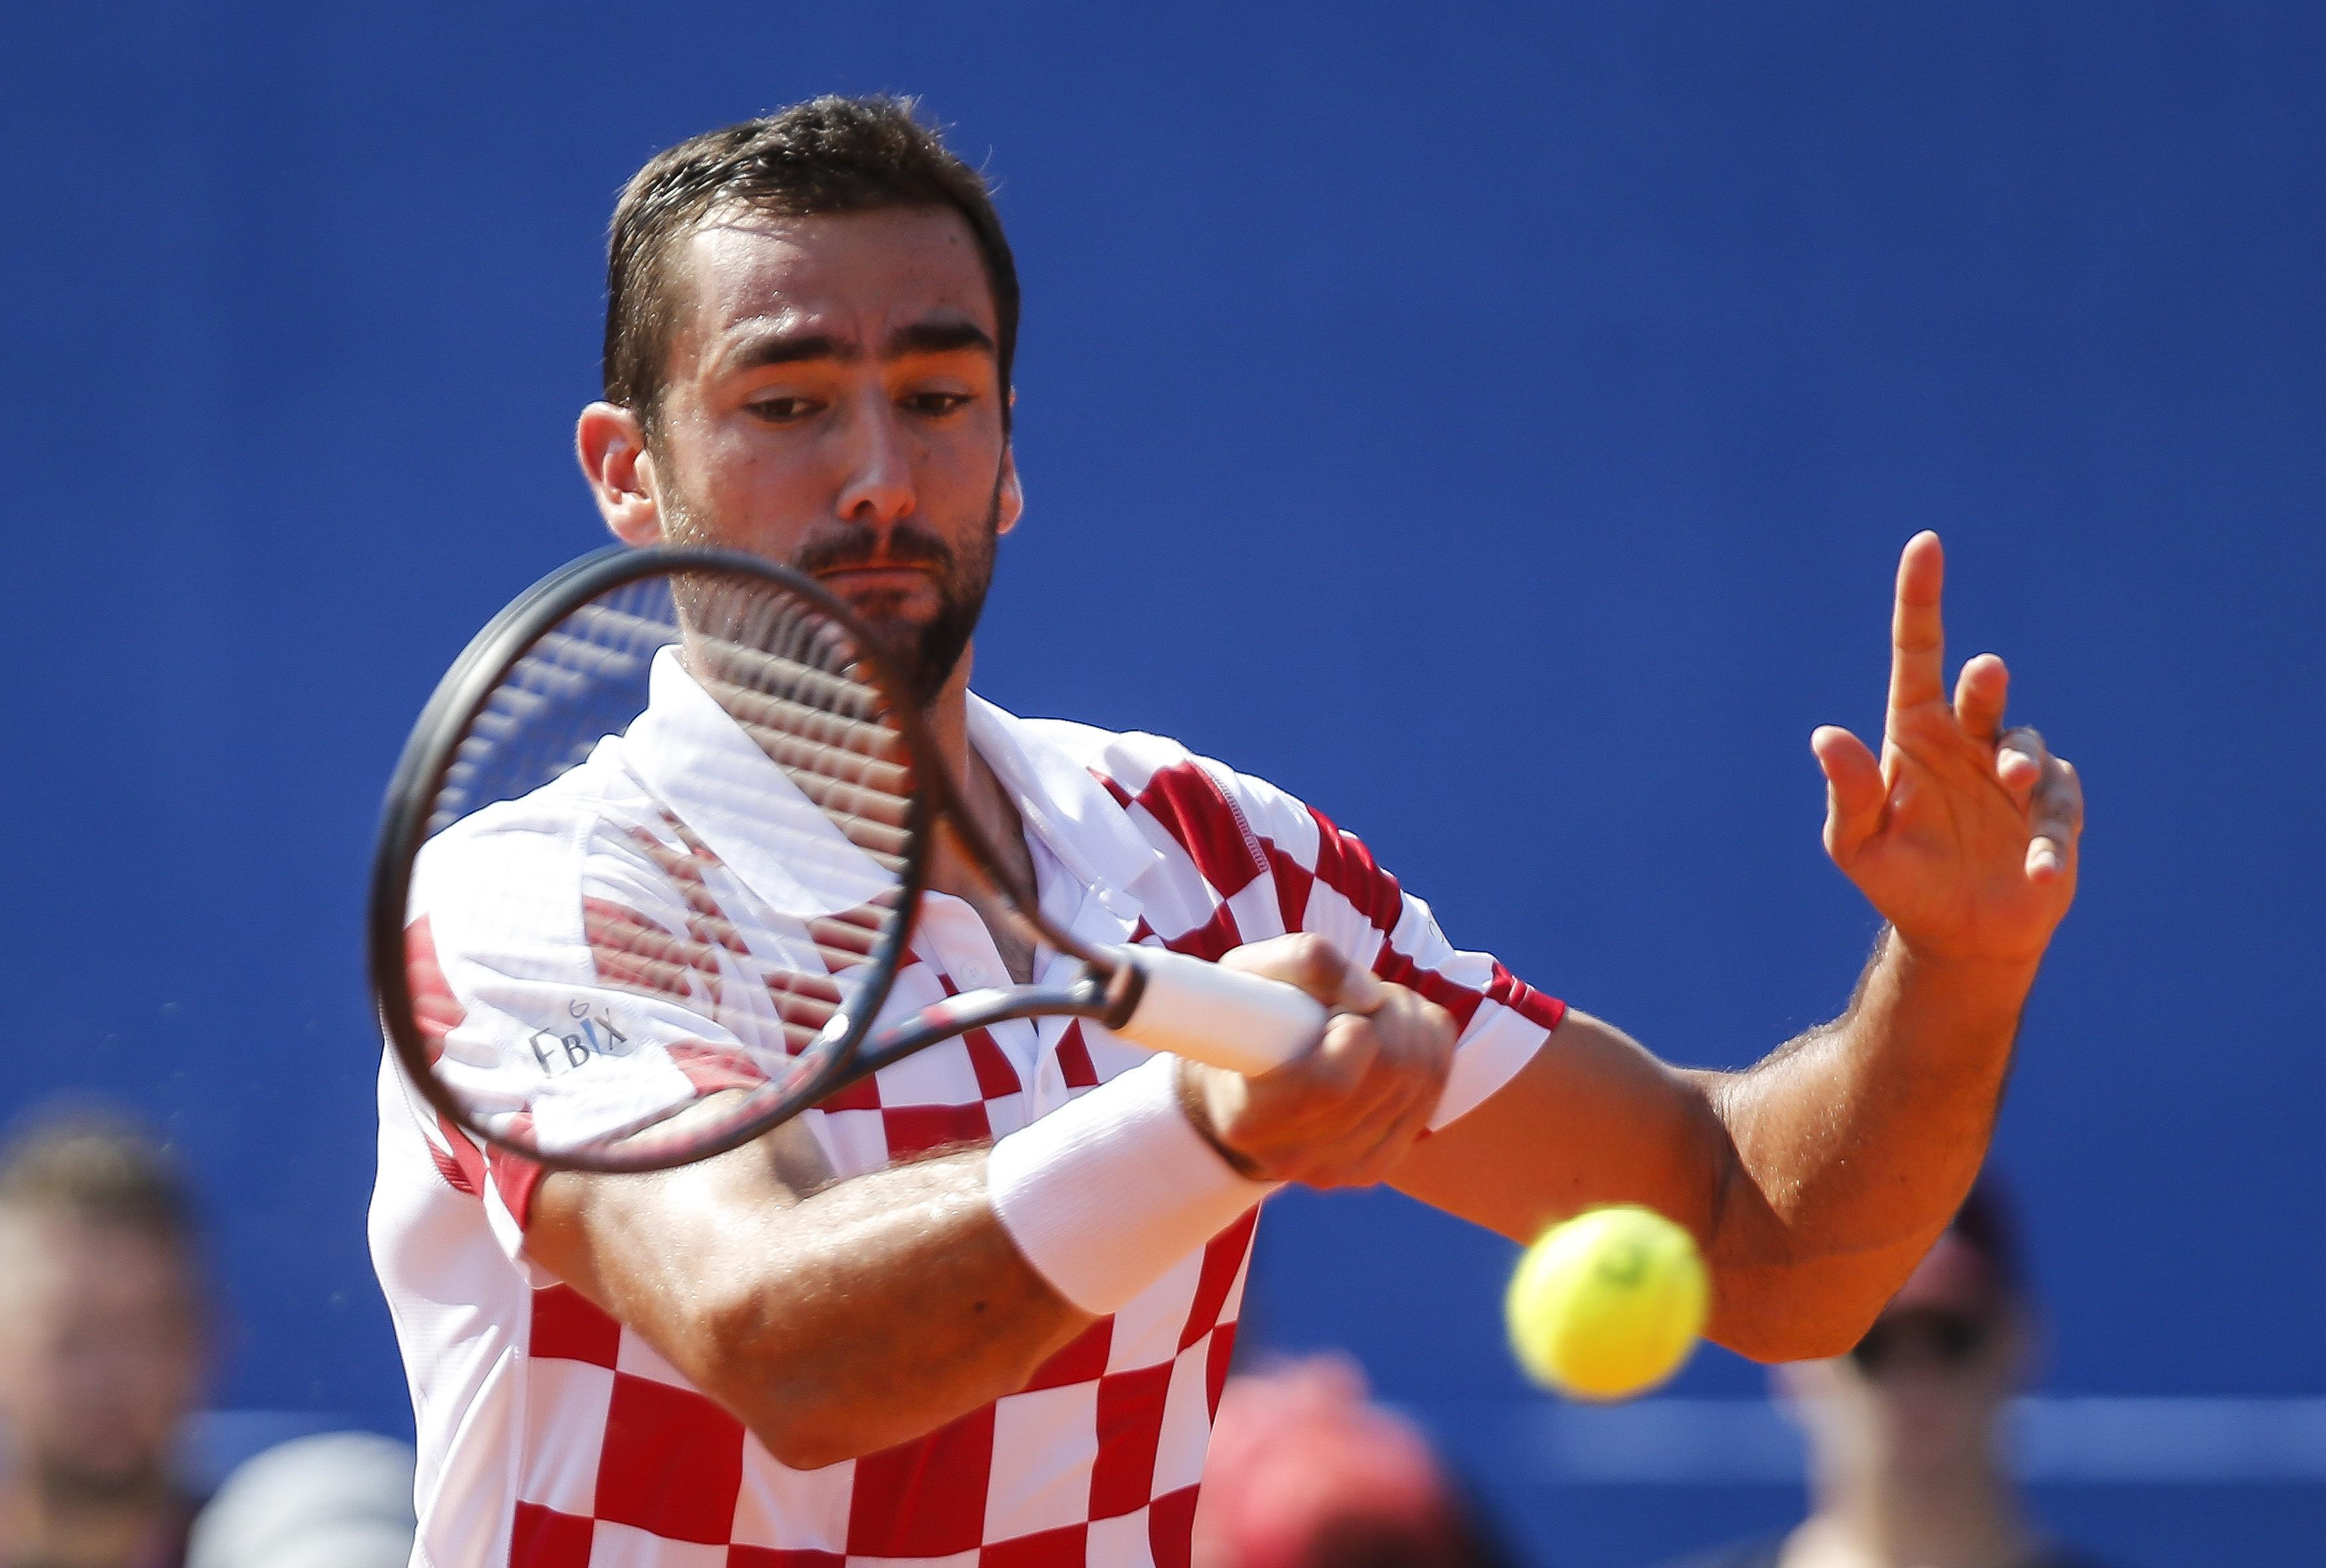 Marin Cilic was well below his best as he succumbed to a shock defeat